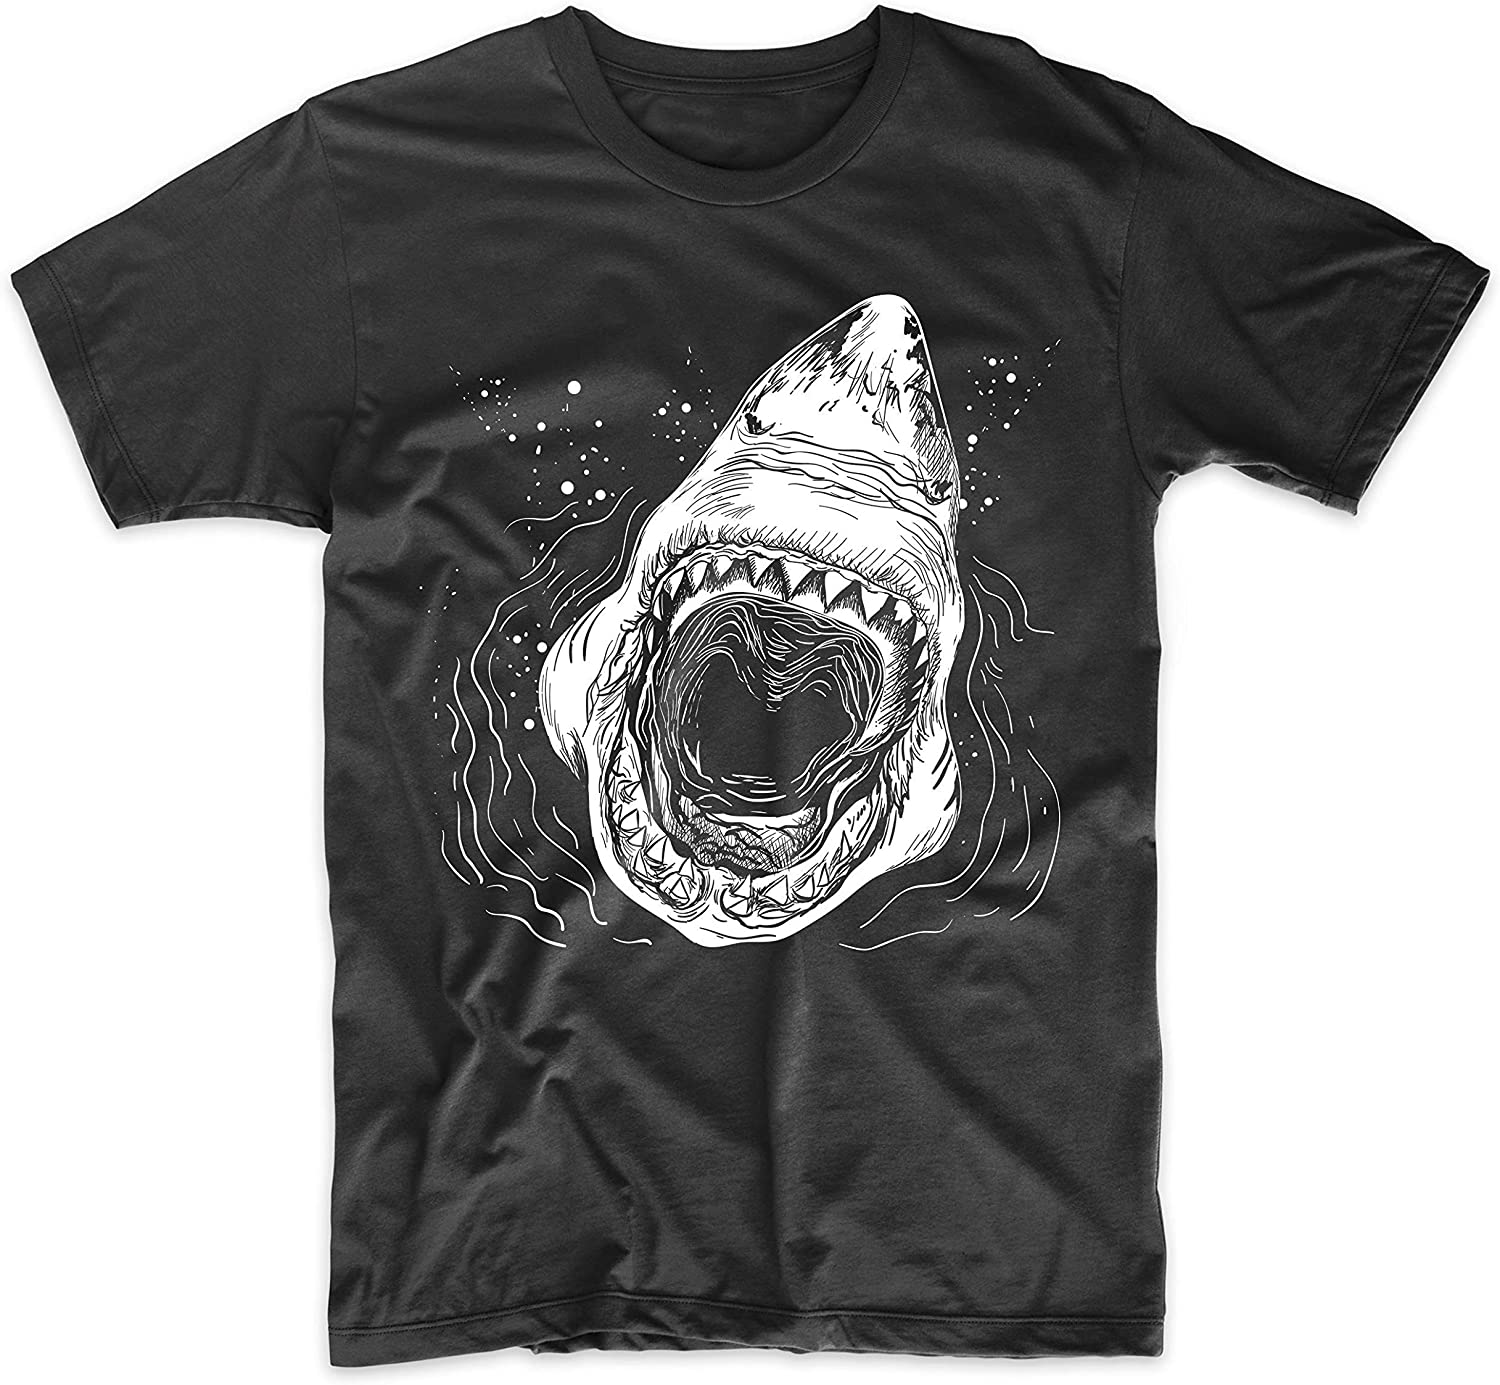 Great White Shark Attack Cool Shark Design T-Shirt